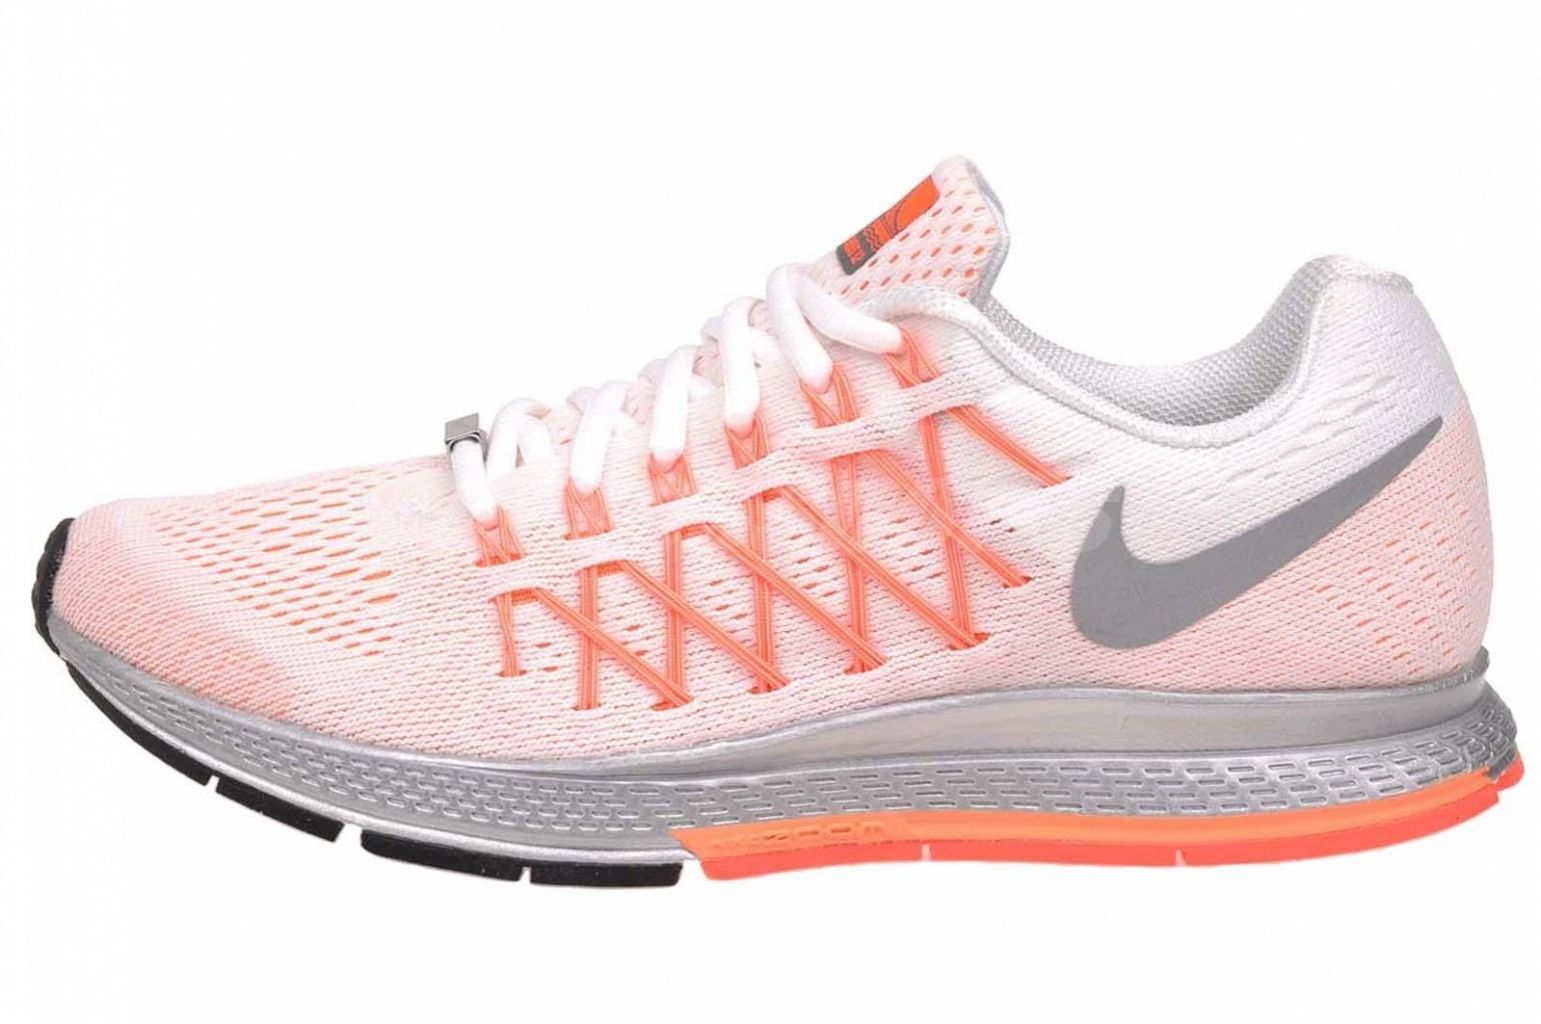 grand choix de c2250 ce2da Nike Air Zoom Pegasus 32 white/orange